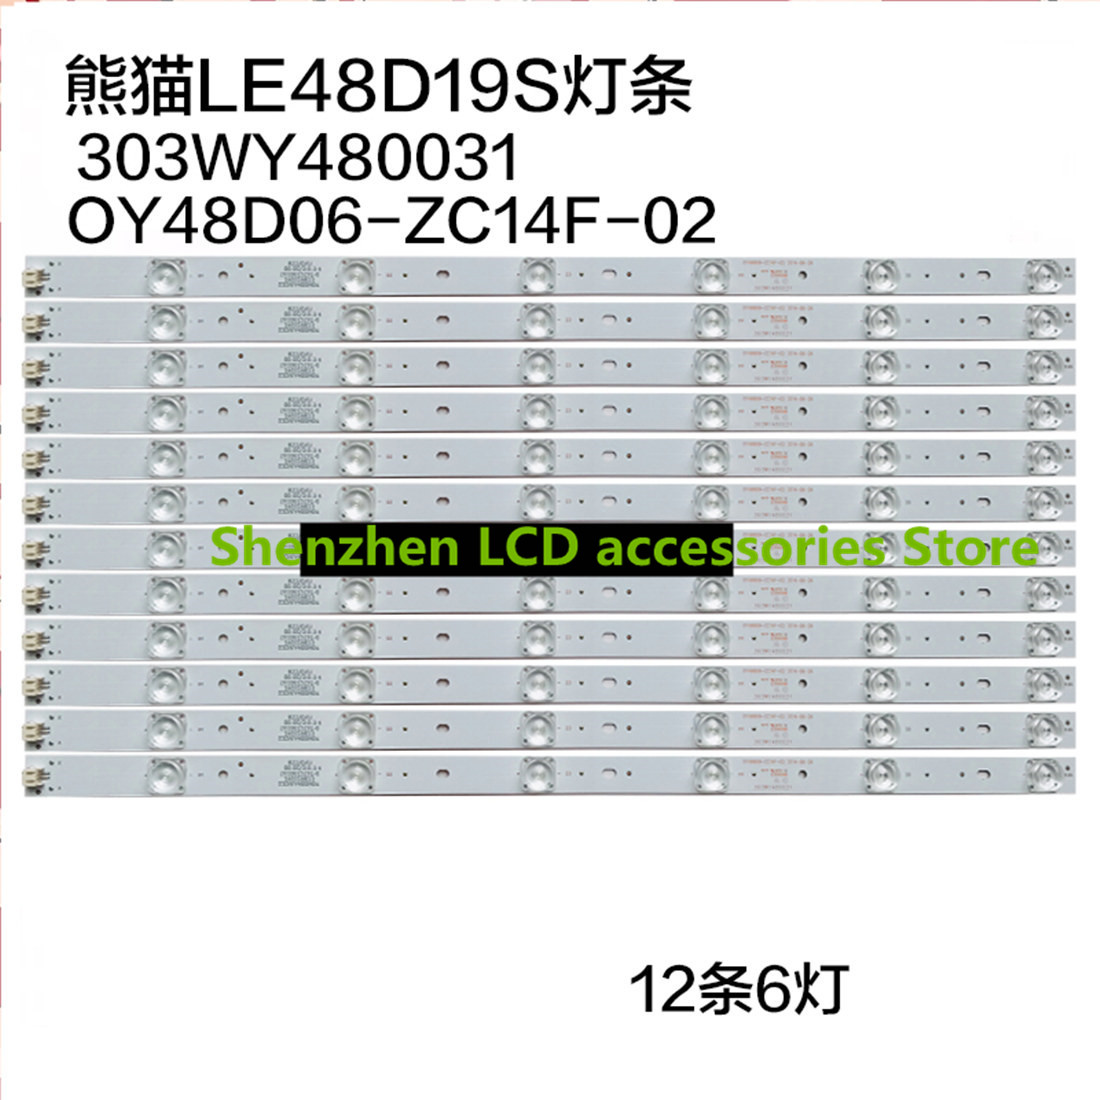 12Pieces/lot    For Panda LE48D19S LCD TV Lamp OY48D06-ZC14F-02 303WY480031  51CM 100%NEW